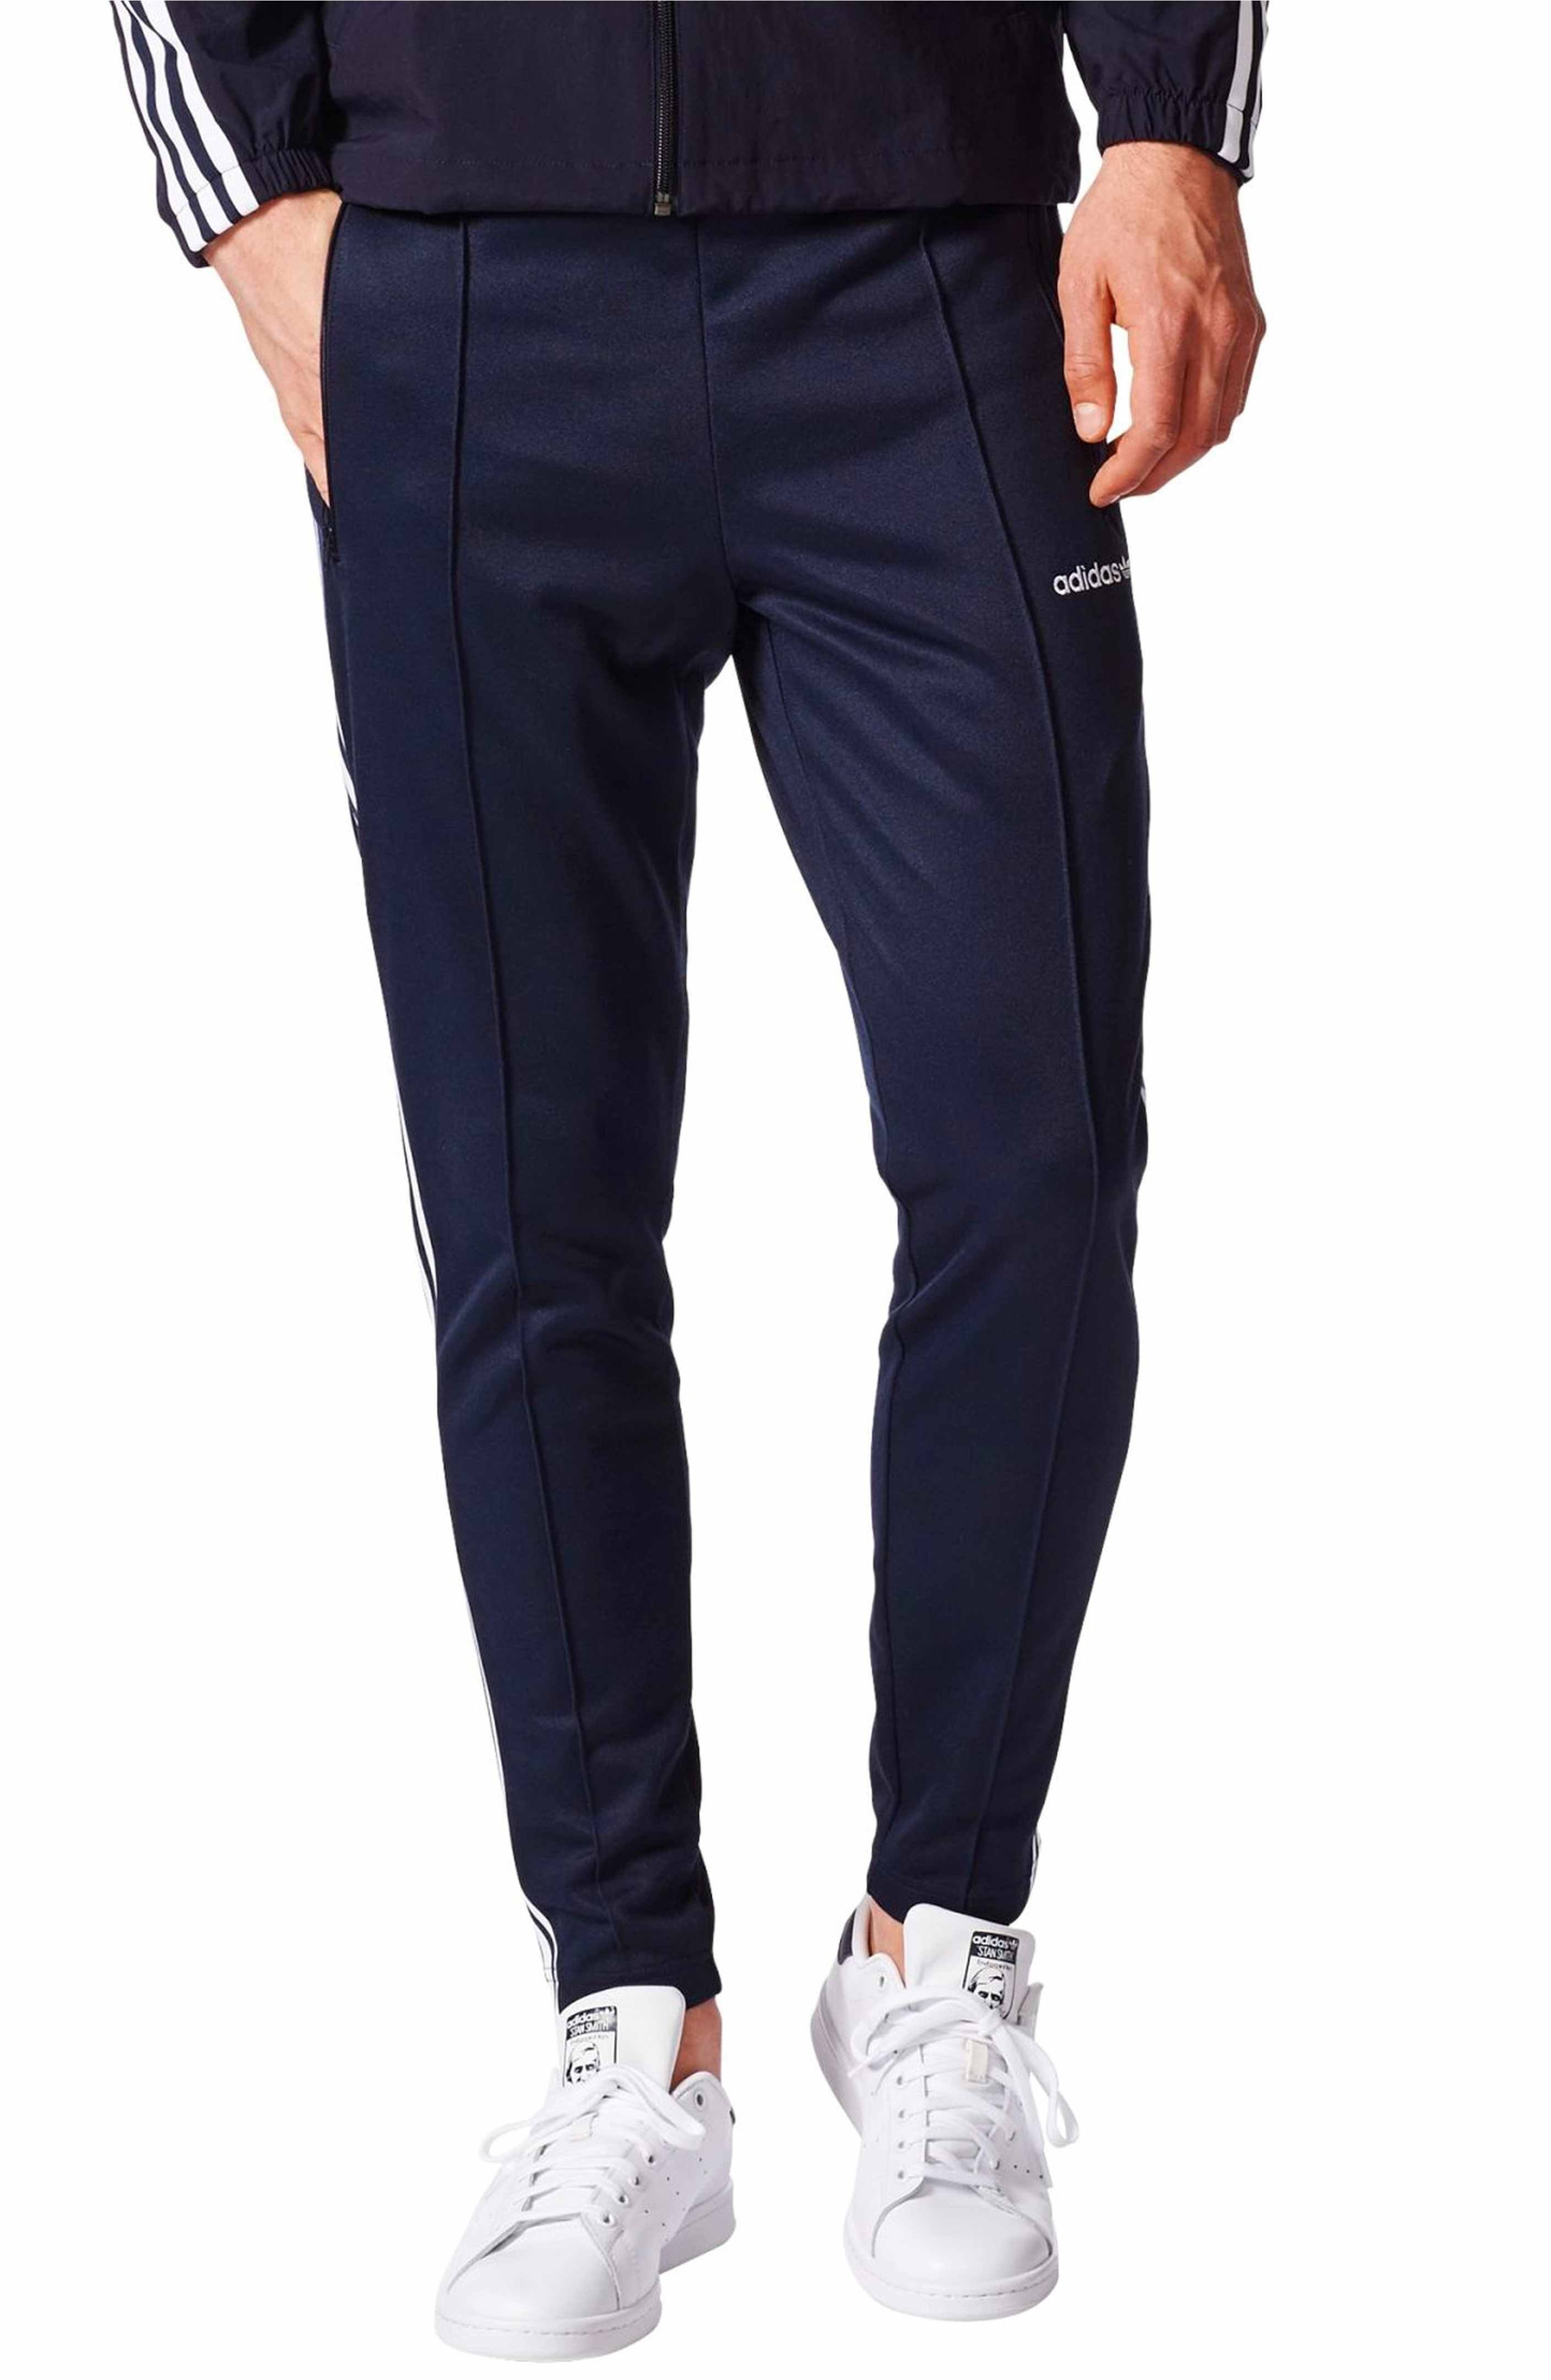 44e34f0c7d71c4 Main Image - adidas Beckenbauer Track Pants | Style in 2019 | Pants ...